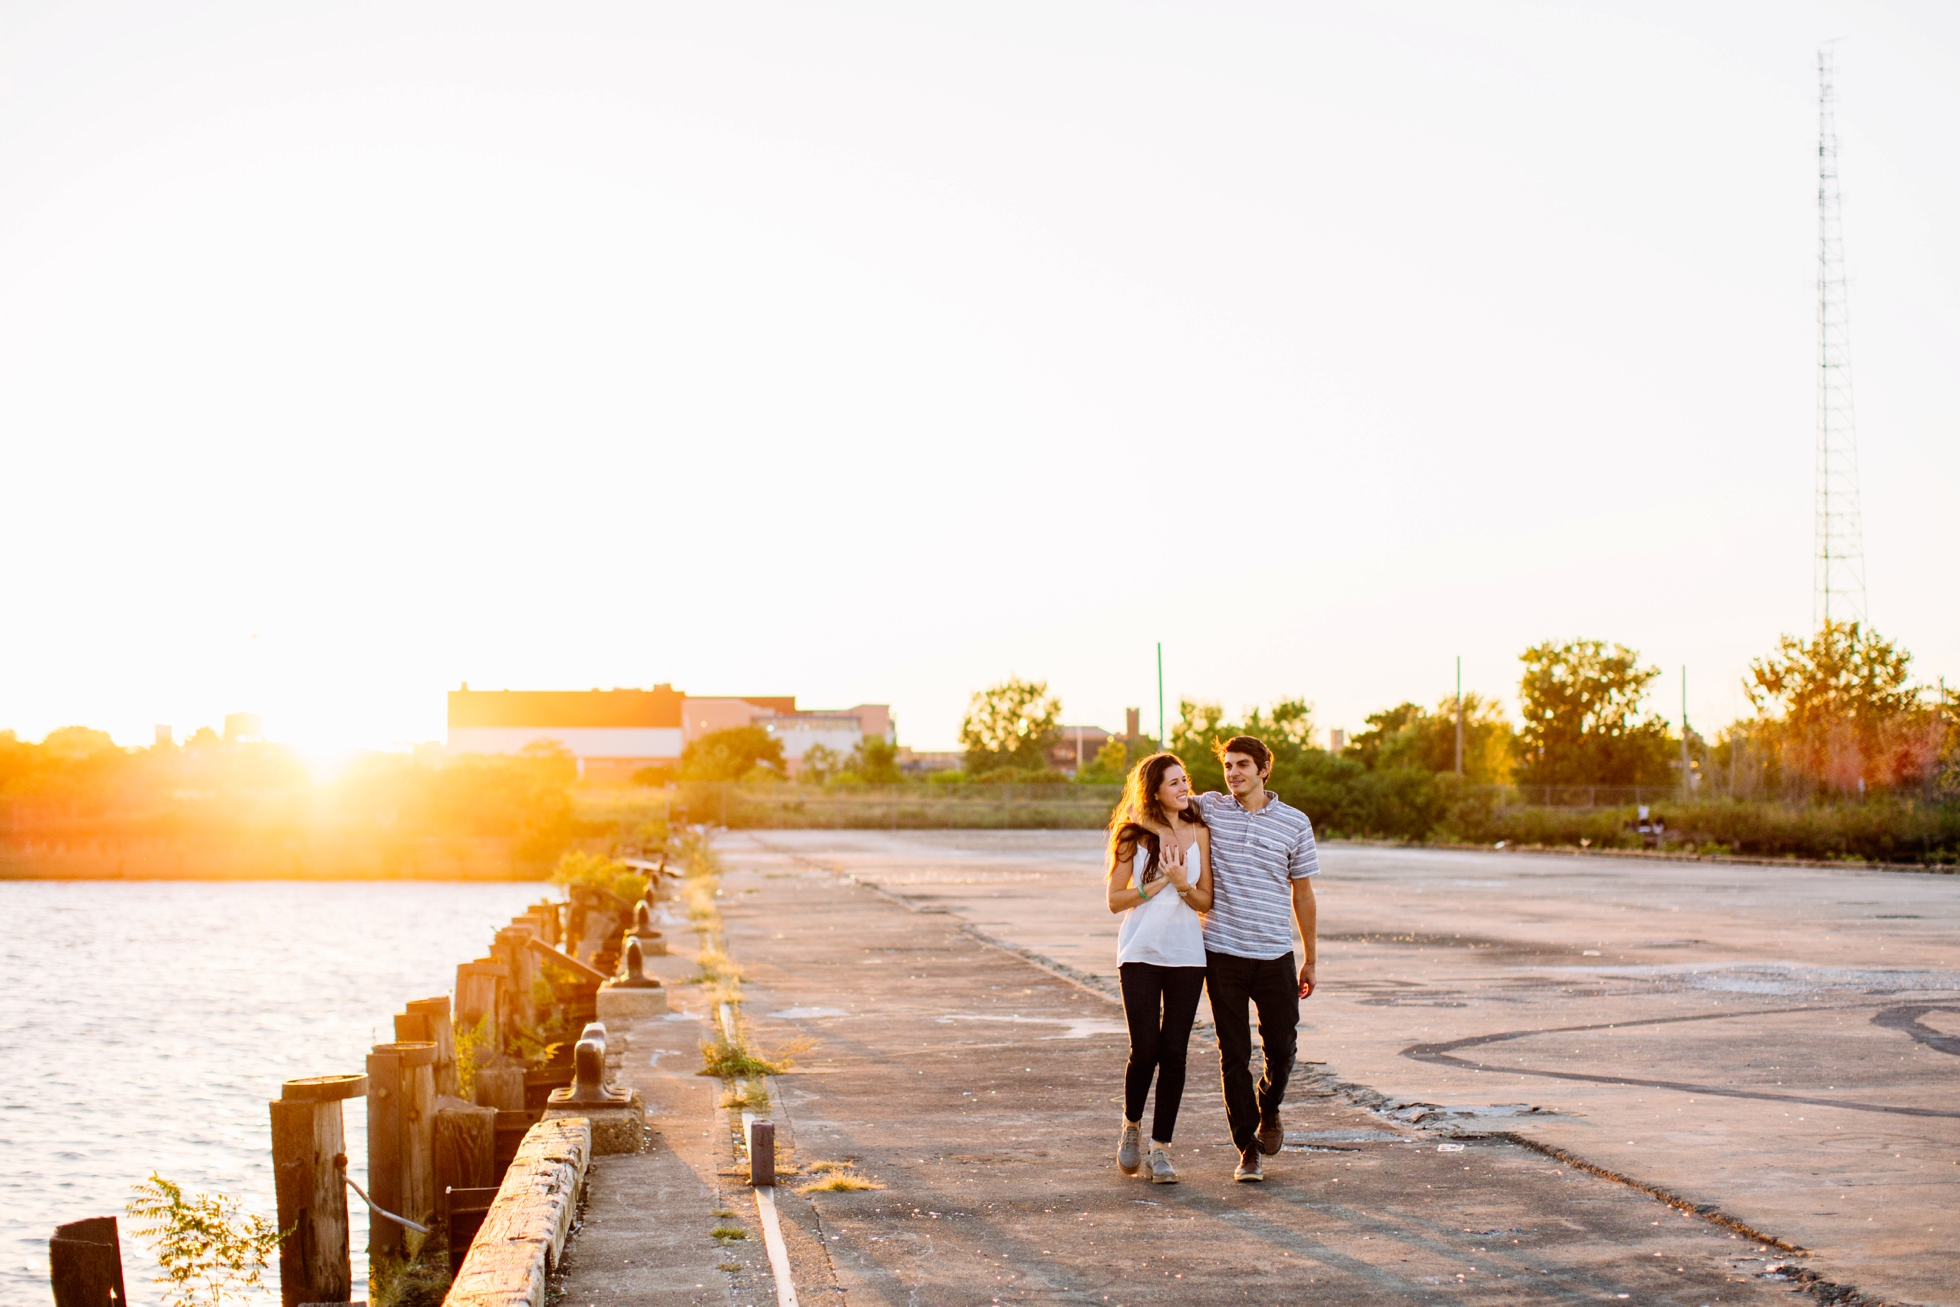 south-philly-sunset-engagement-photos-neon-0003